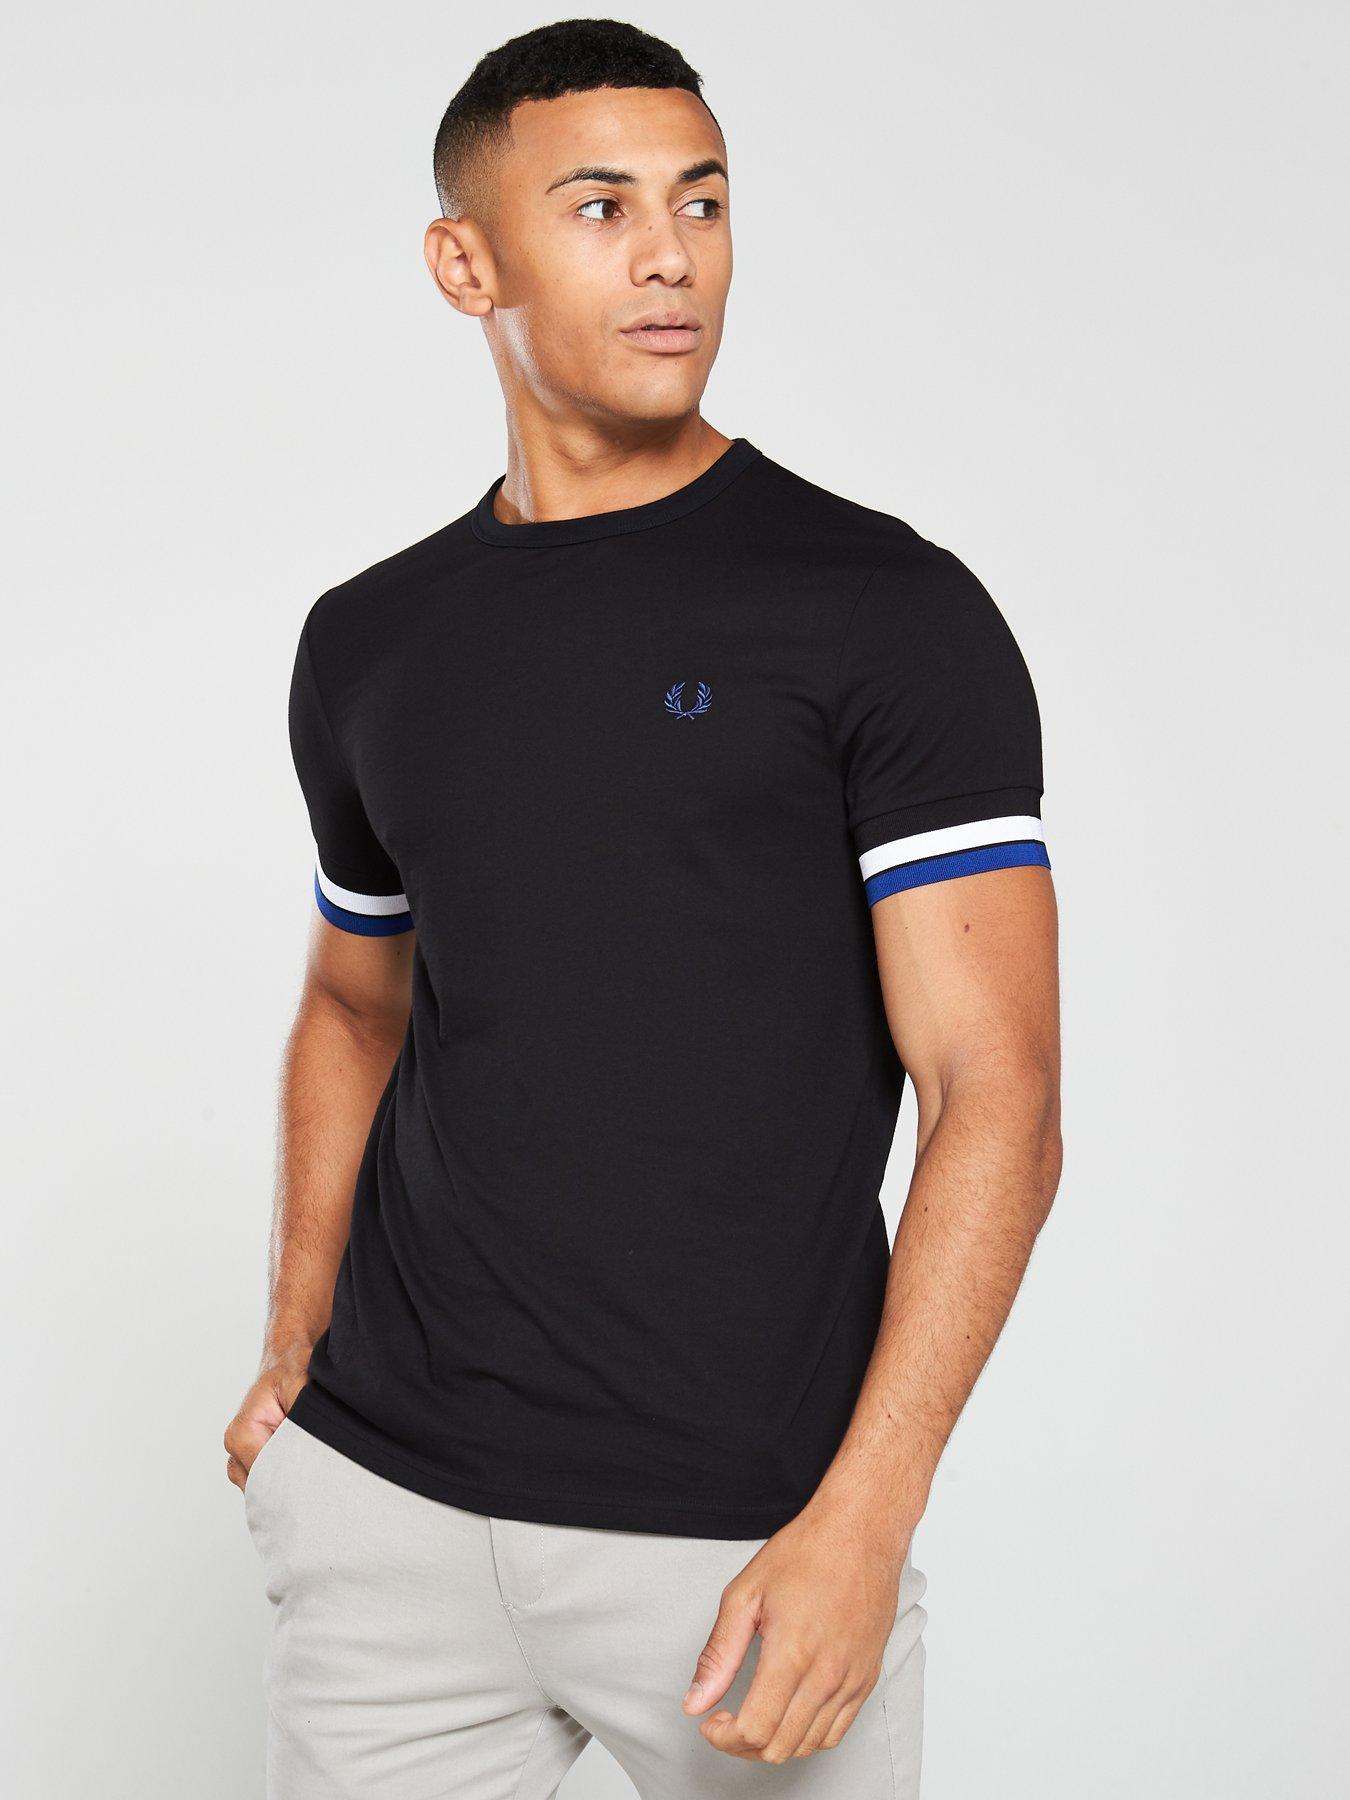 Retro cycling jerseys : Fred Perry, Paul Smith, Adidas